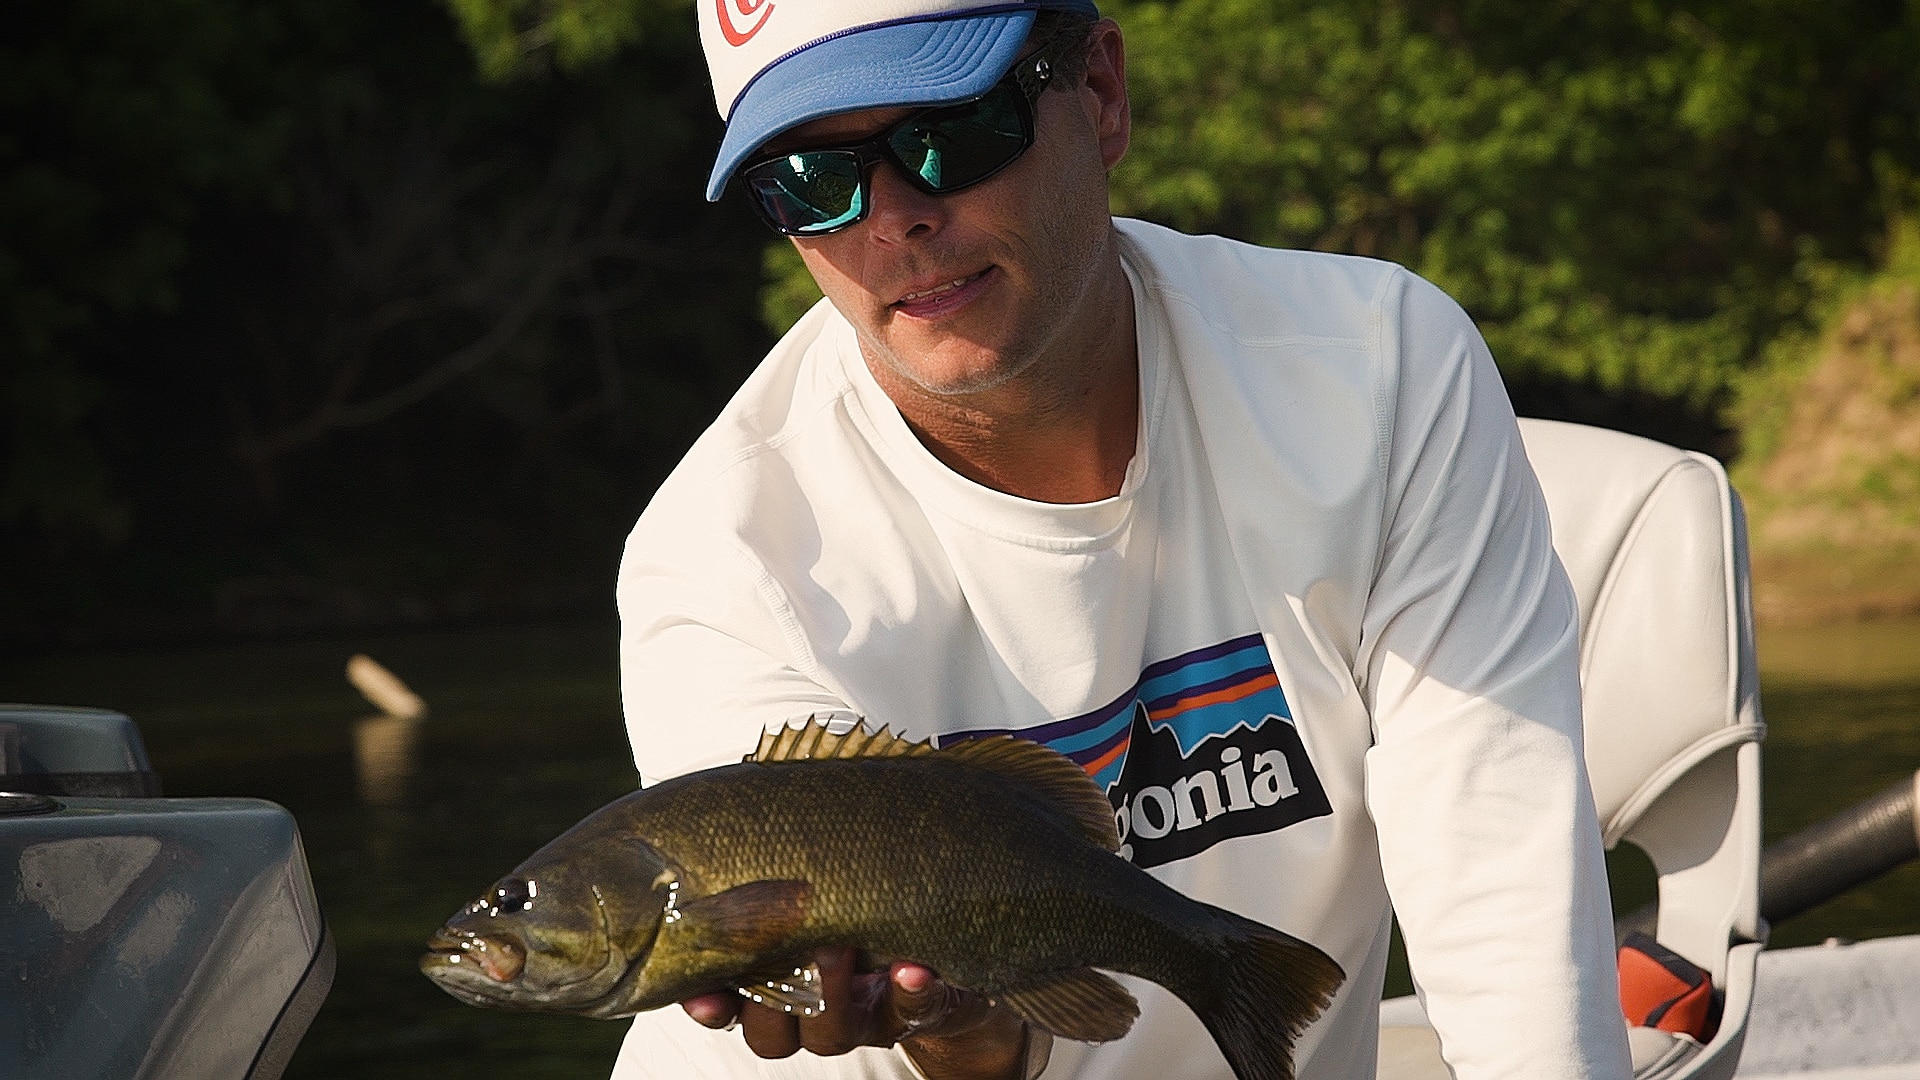 Fly Fishing in VA with Blane Chocklett: Re-Discover Your Region #8